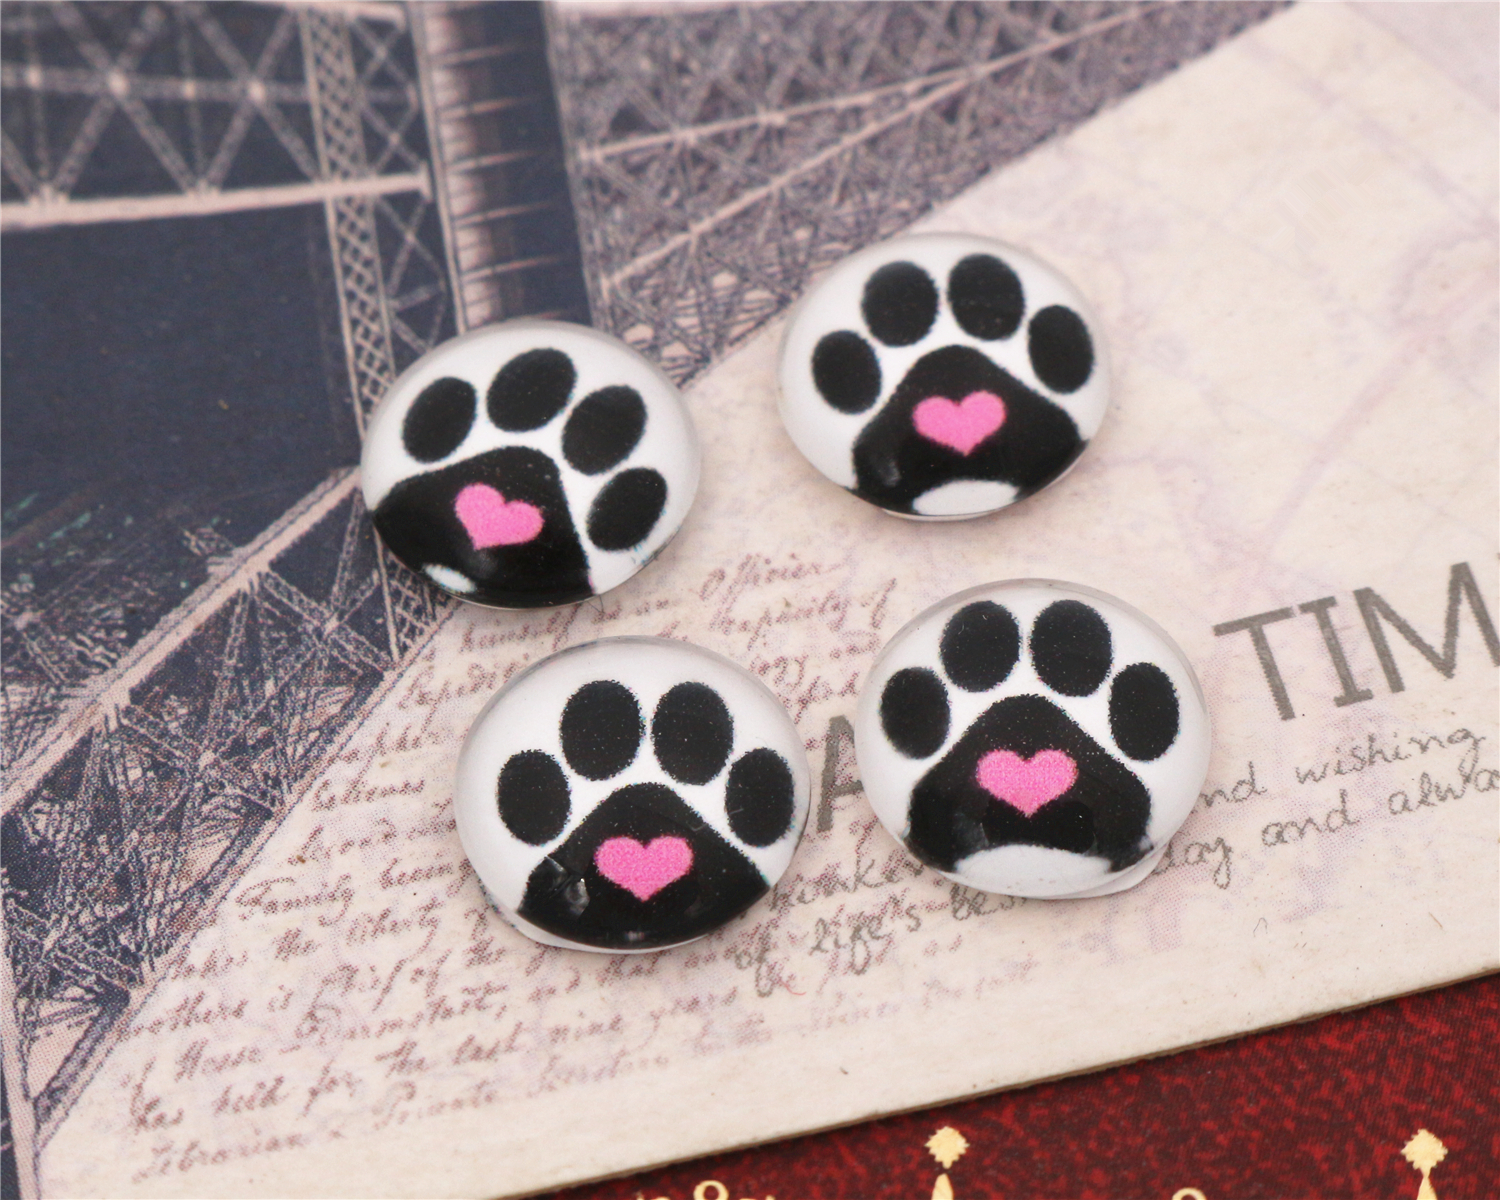 New Fashion  20pcs 12mm Love claws Handmade Photo Glass Cabochons Pattern Domed Jewelry Accessories Supplies-E6-21New Fashion  20pcs 12mm Love claws Handmade Photo Glass Cabochons Pattern Domed Jewelry Accessories Supplies-E6-21